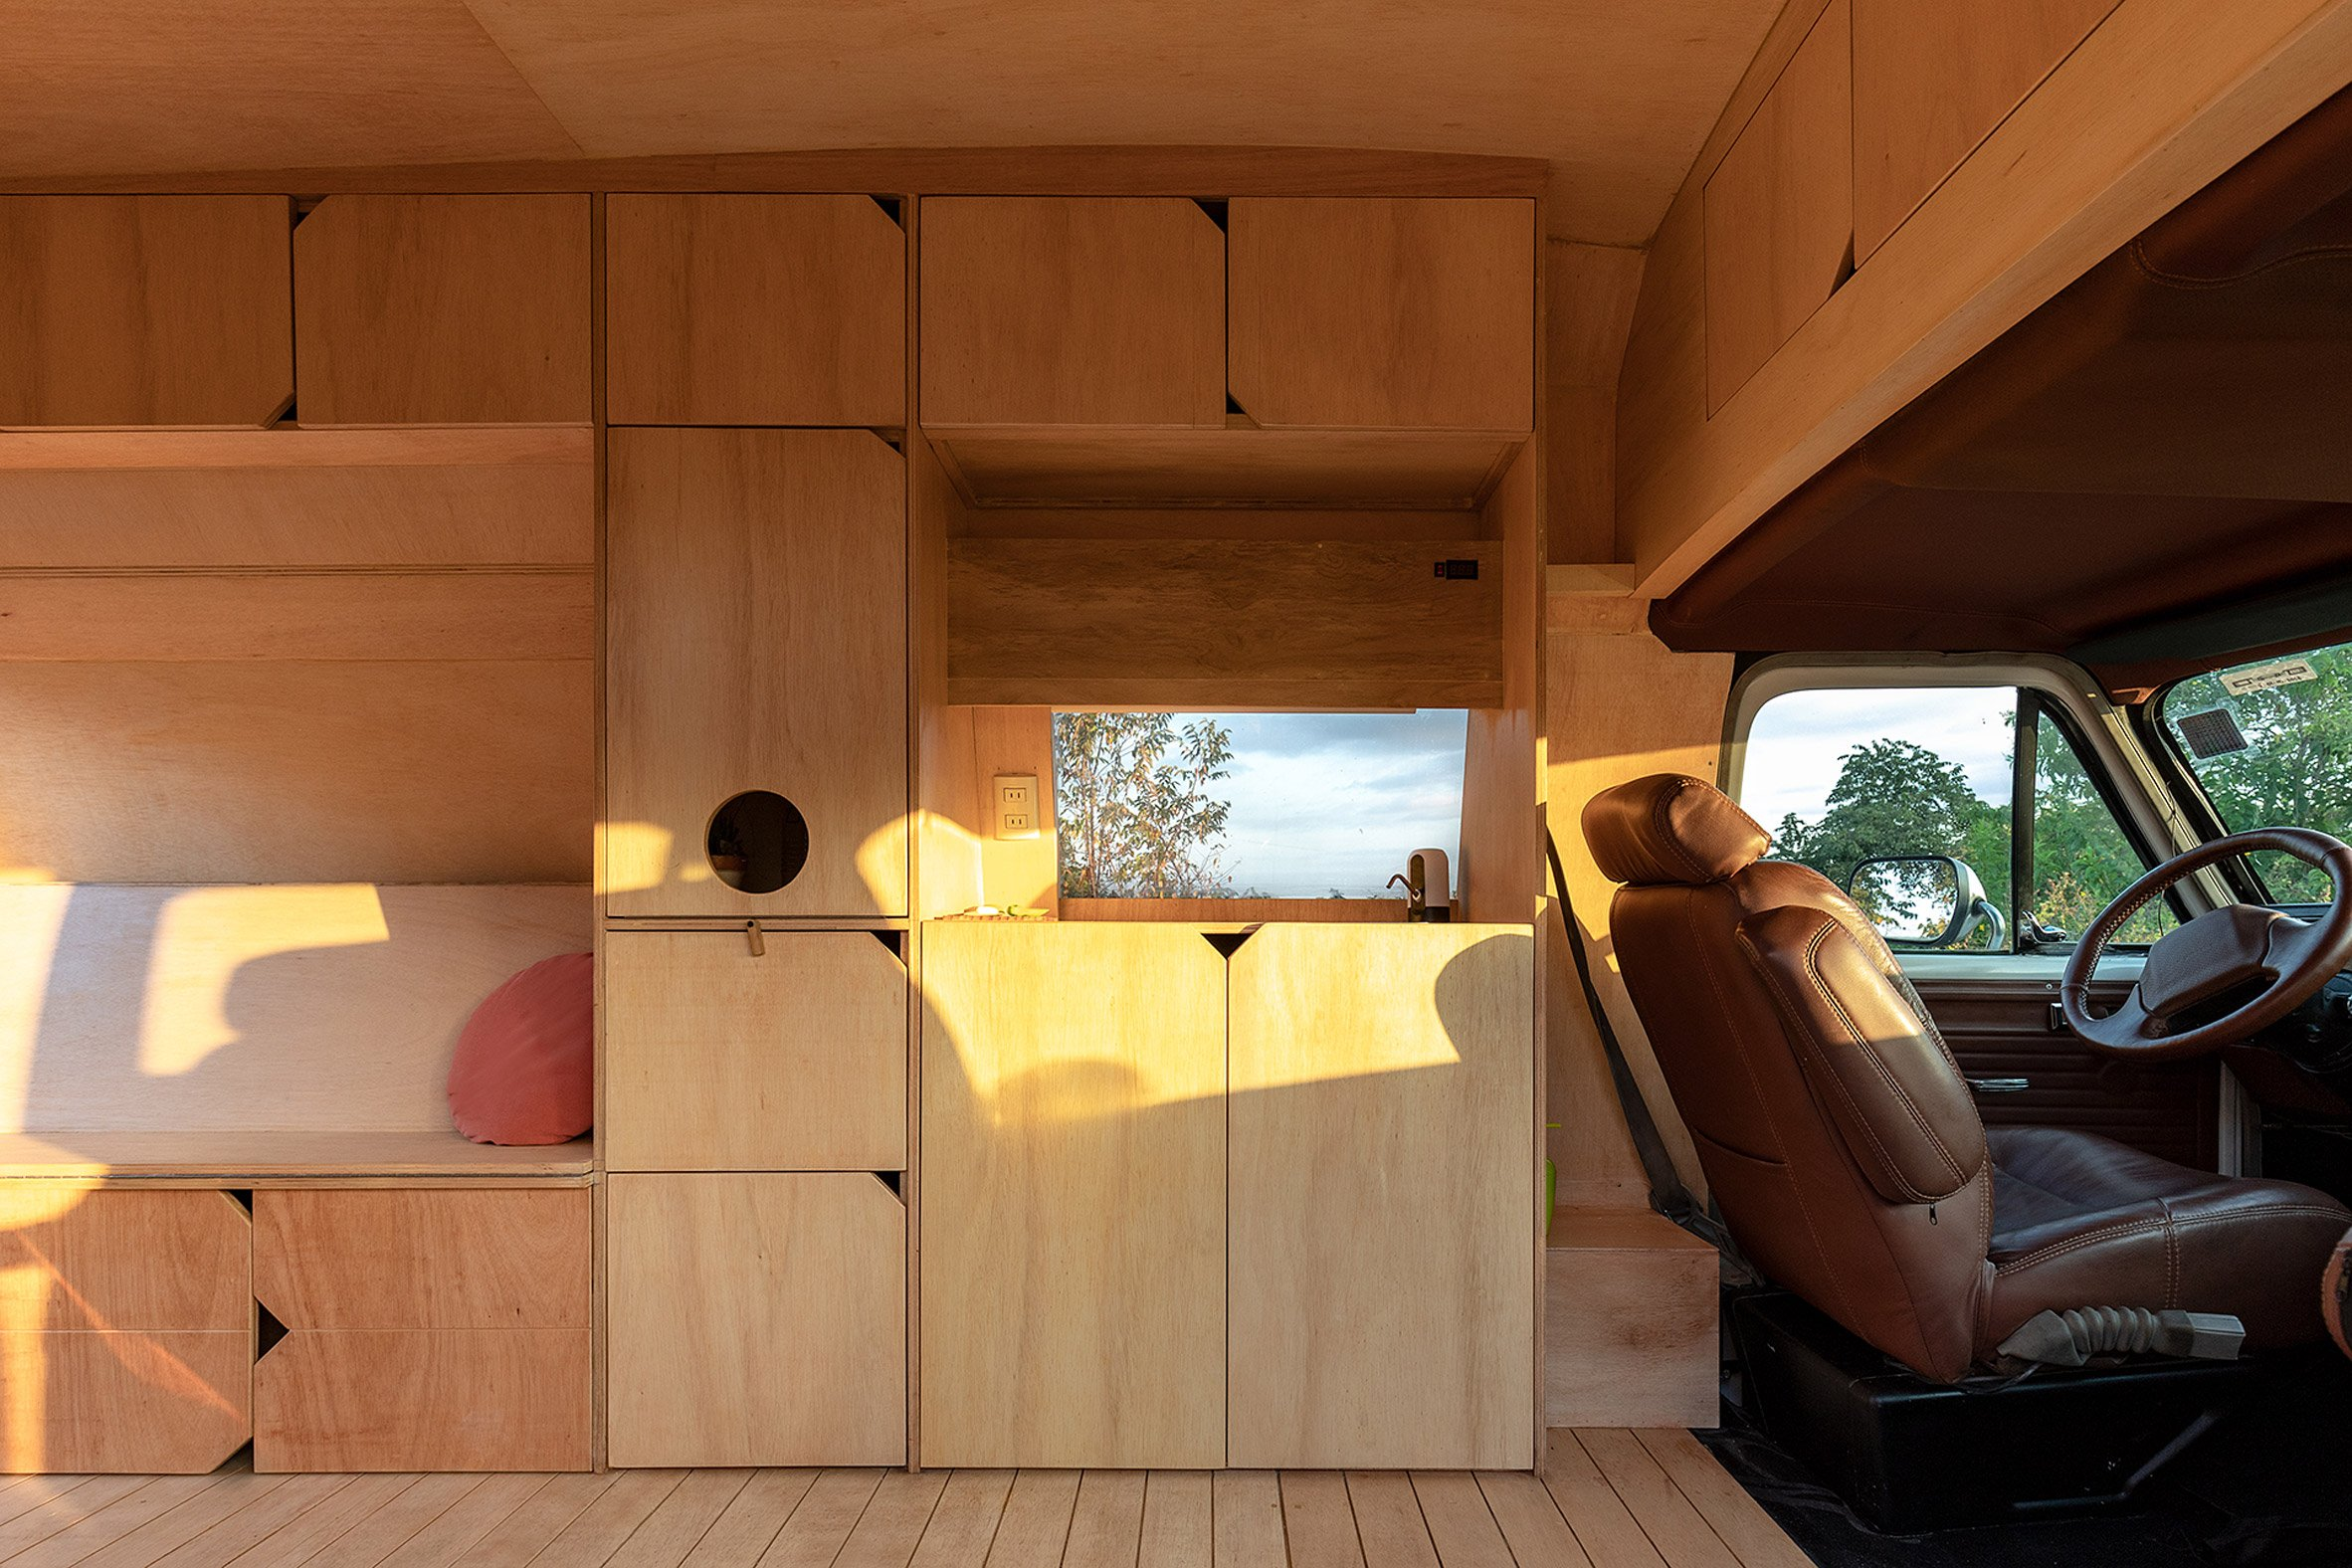 Plywood boxes and storage units inside Dodo Van